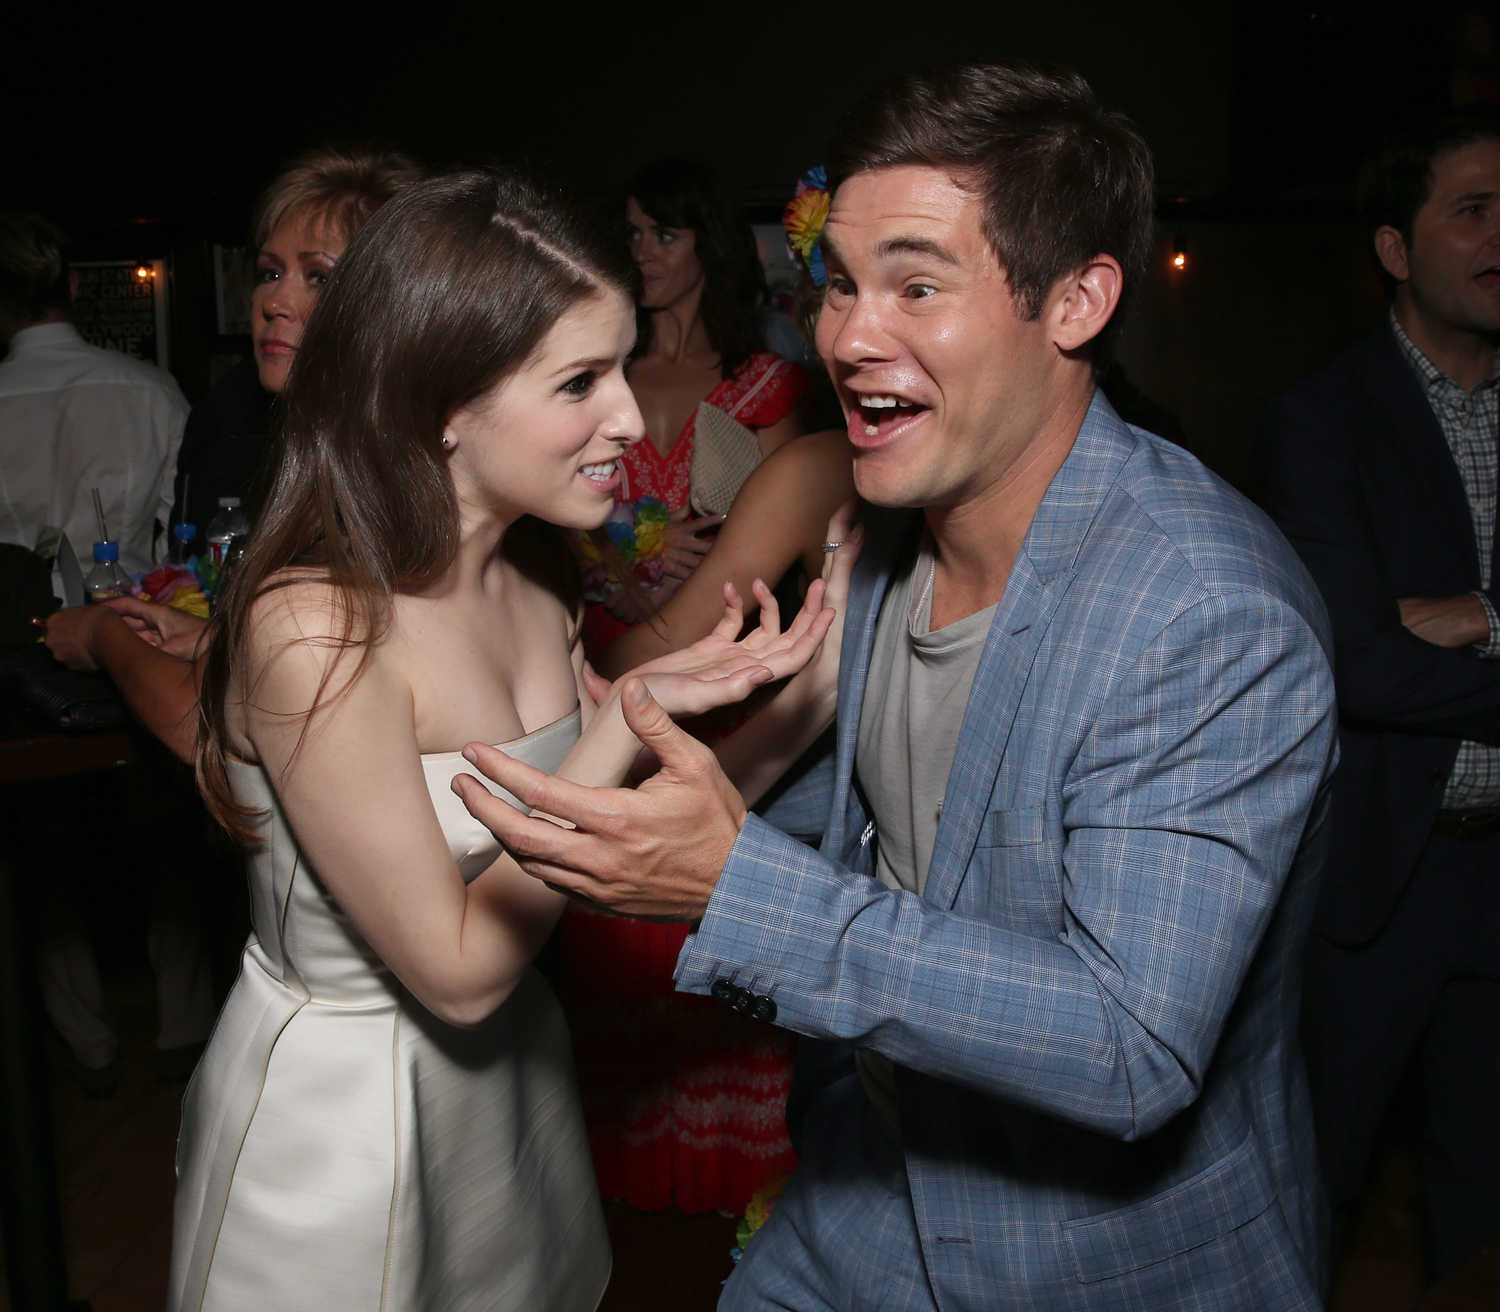 Mike And Dave Need Wedding Dates Plugged In: Anna Kendrick At The Mike And Dave Need Wedding Dates